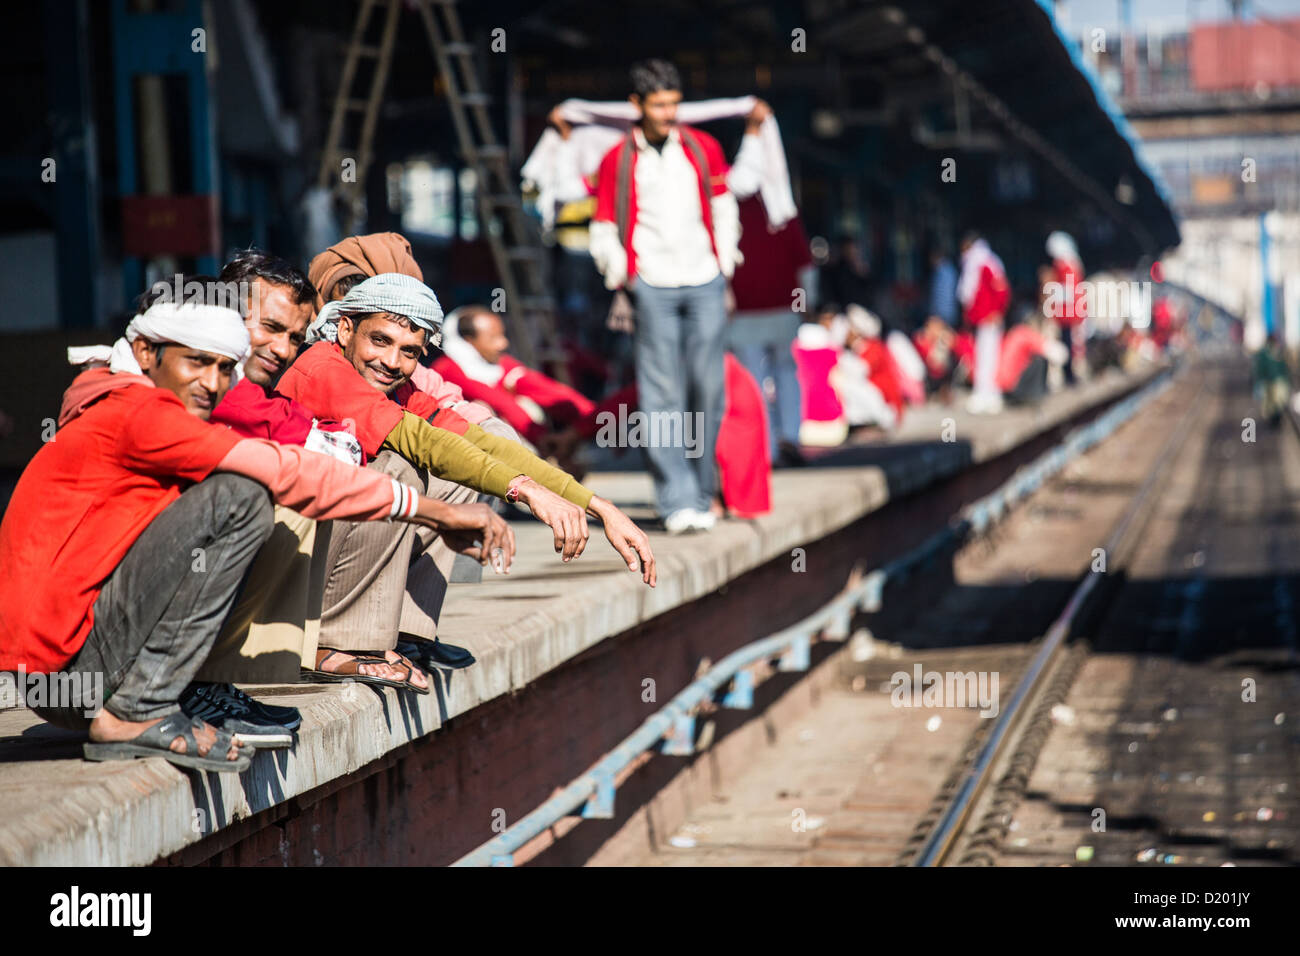 Porters at New Delhi Railway Station, Delhi, India - Stock Image